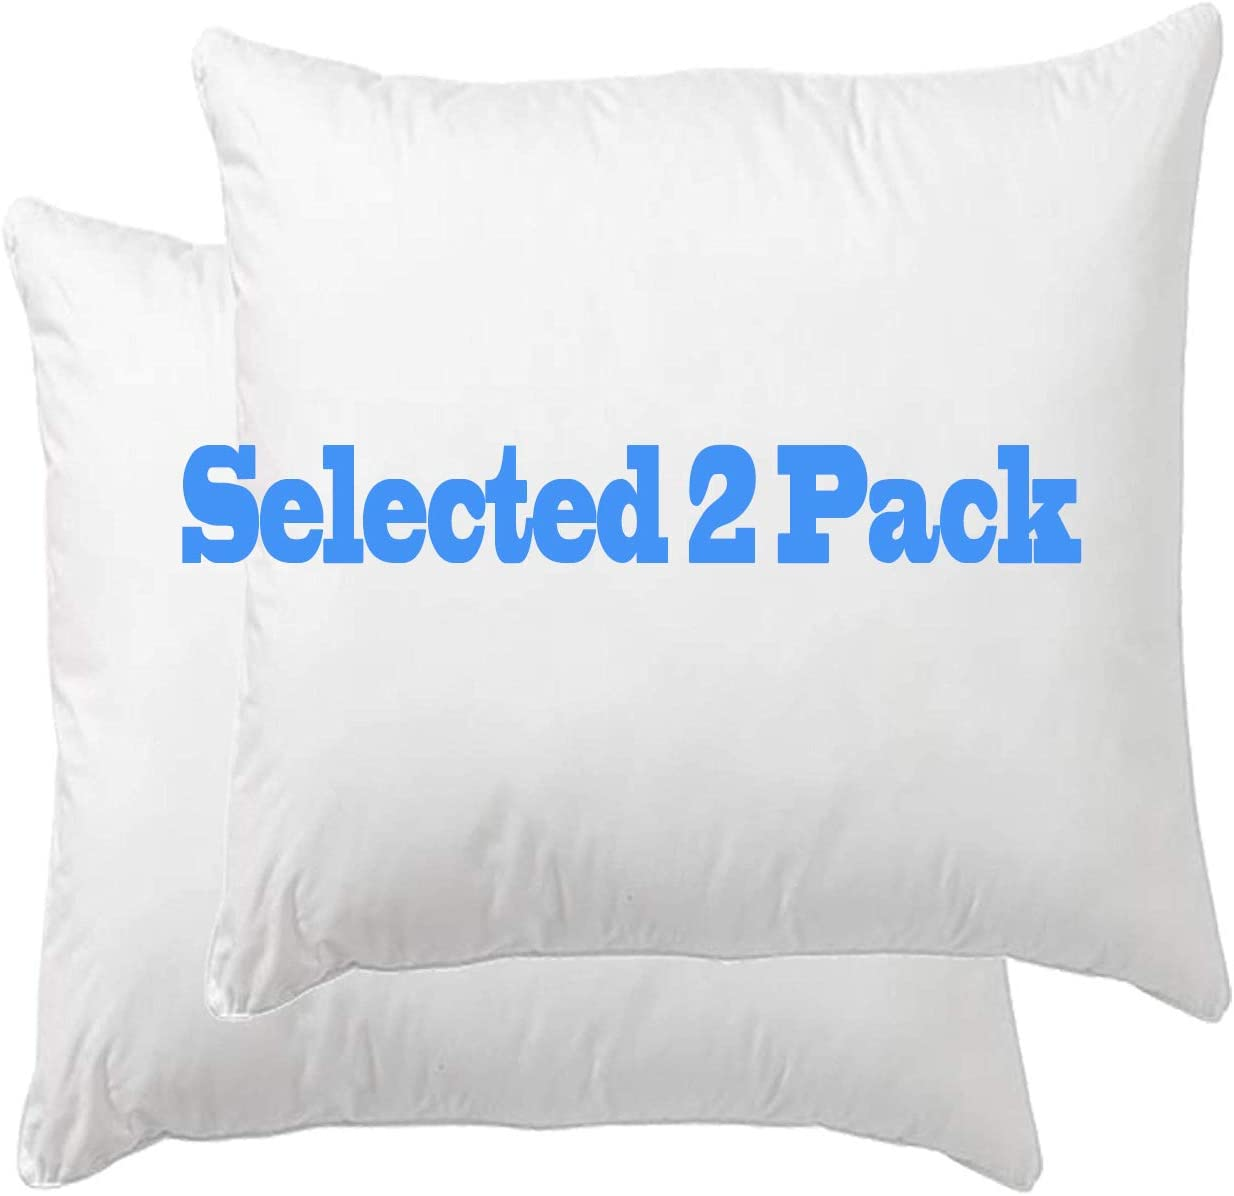 Cotton Down Alternative Decorative Throw Pillow Insert 20X20 Inches Set of 2 Square